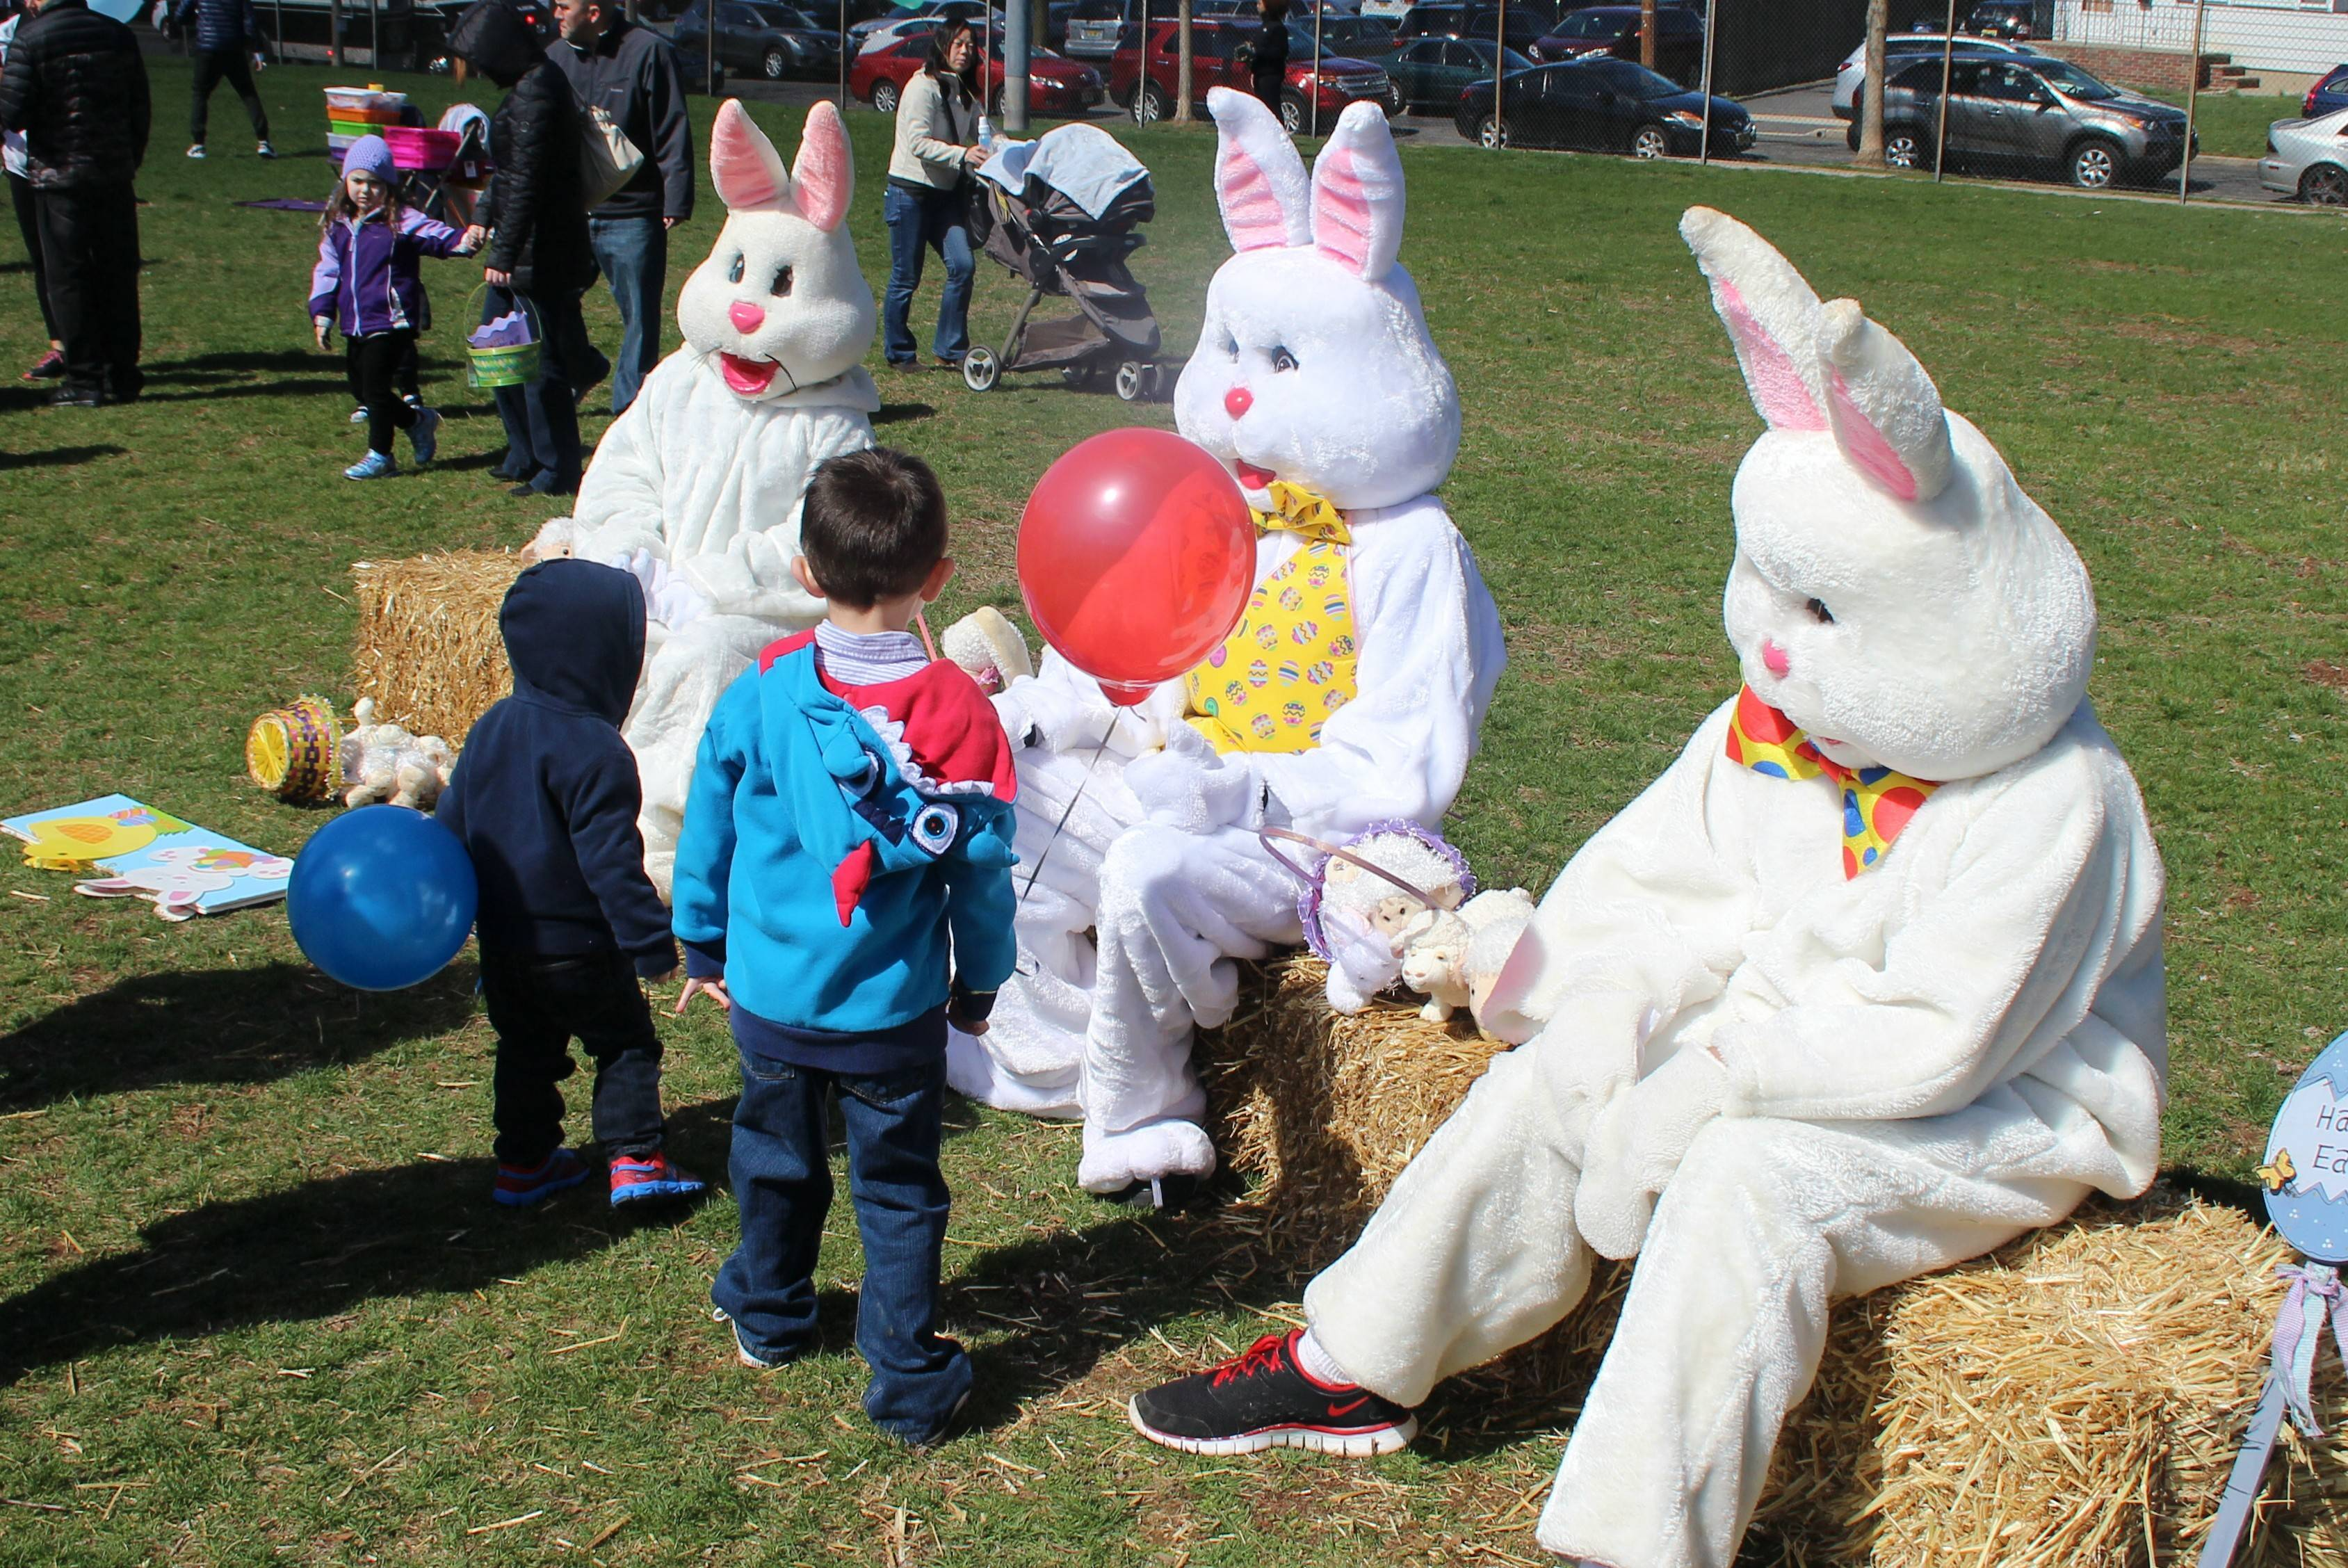 f0251e27a7753da3e3f6_Easter_Egg_Hunt_Bloomfield_Skyline_Church__051.jpg